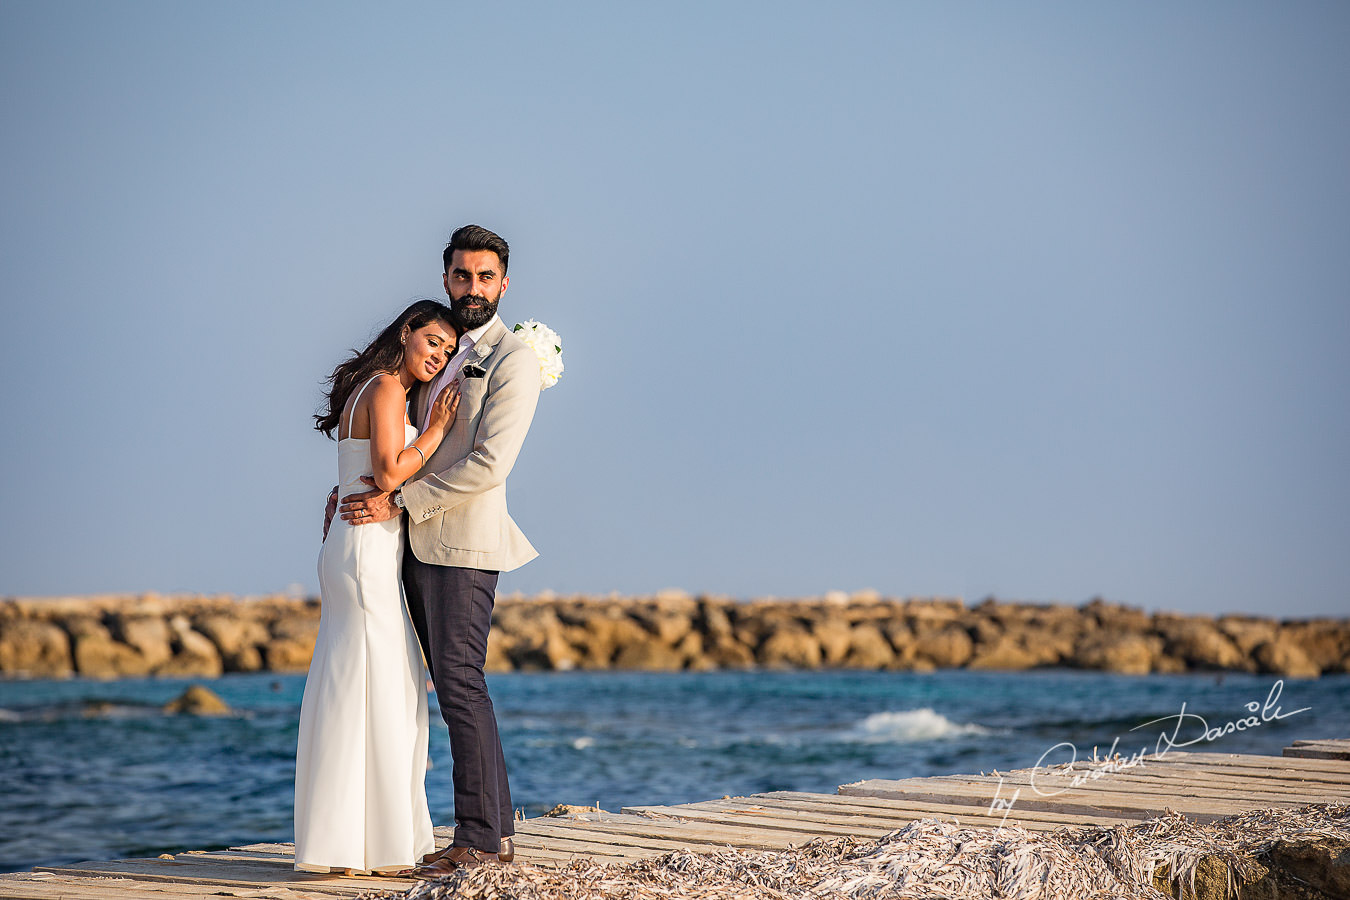 Harpreet and Sabrina photographed by Cristian Dascalu at Athena Beach Hotel in Paphos, Cyprus, during a symbolic wedding.